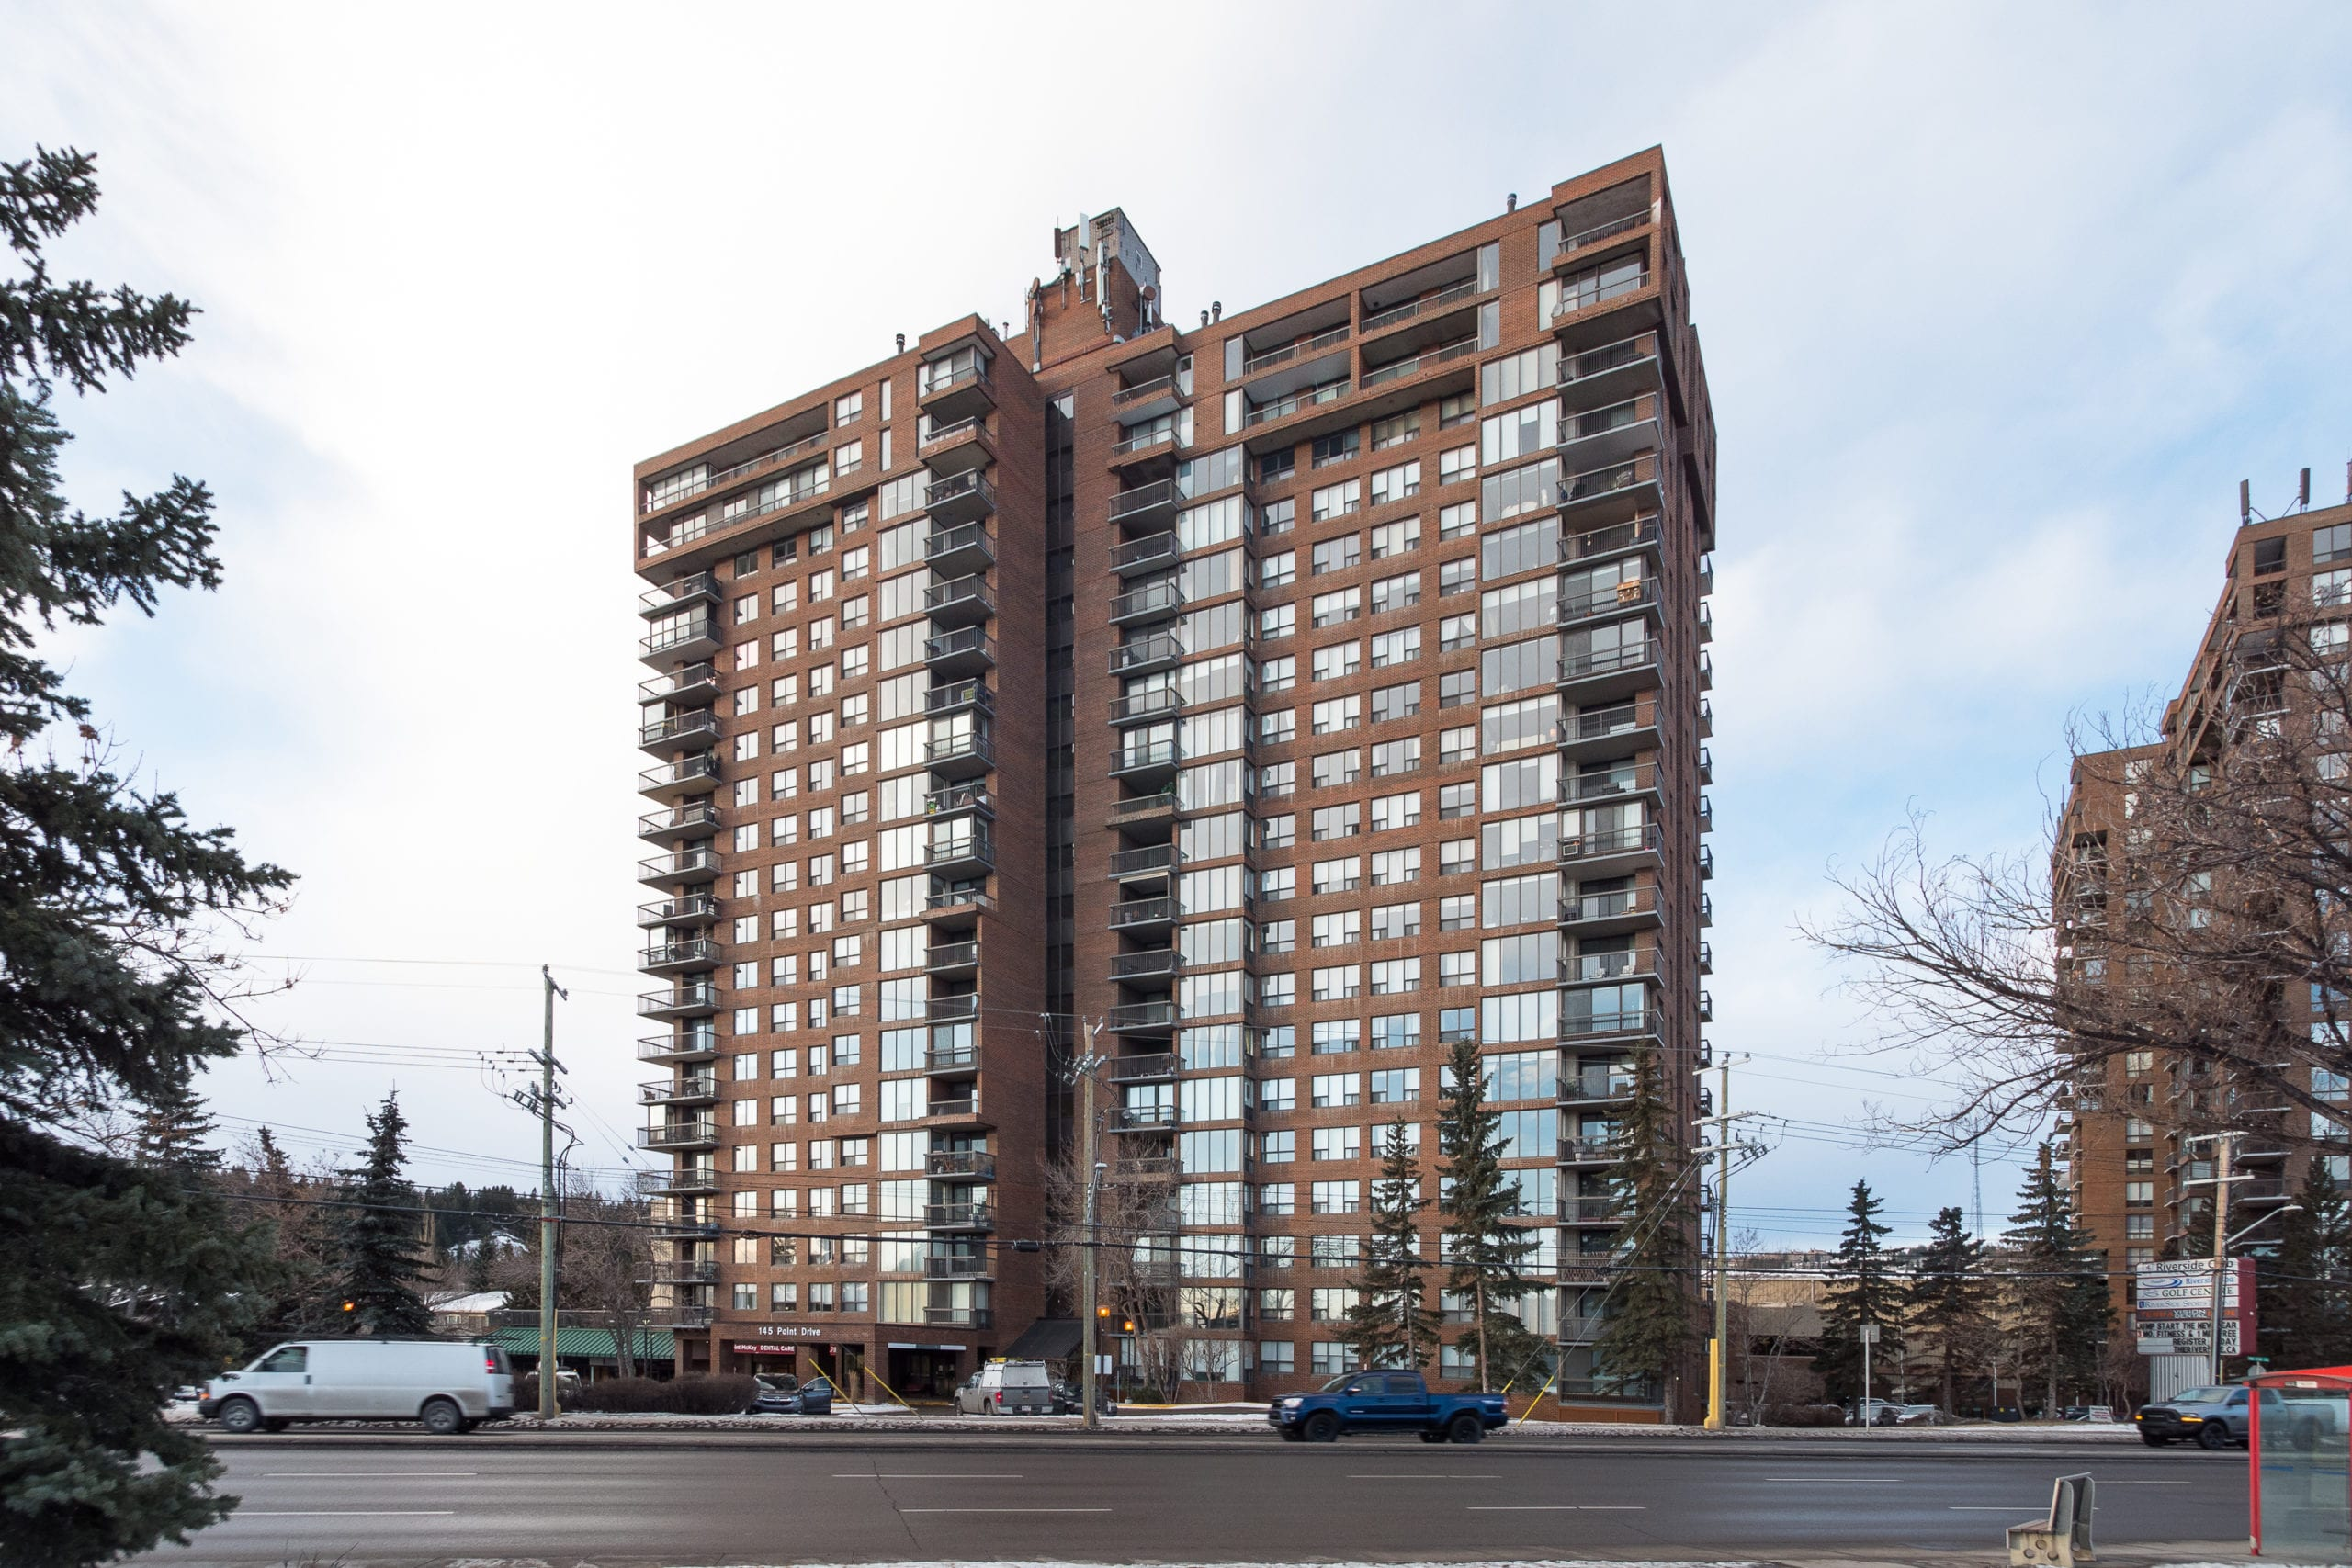 Hello Gorgeous - #705-145 point drive NW, Calgary AB - Tara Molina Real Estate (42 of 45)